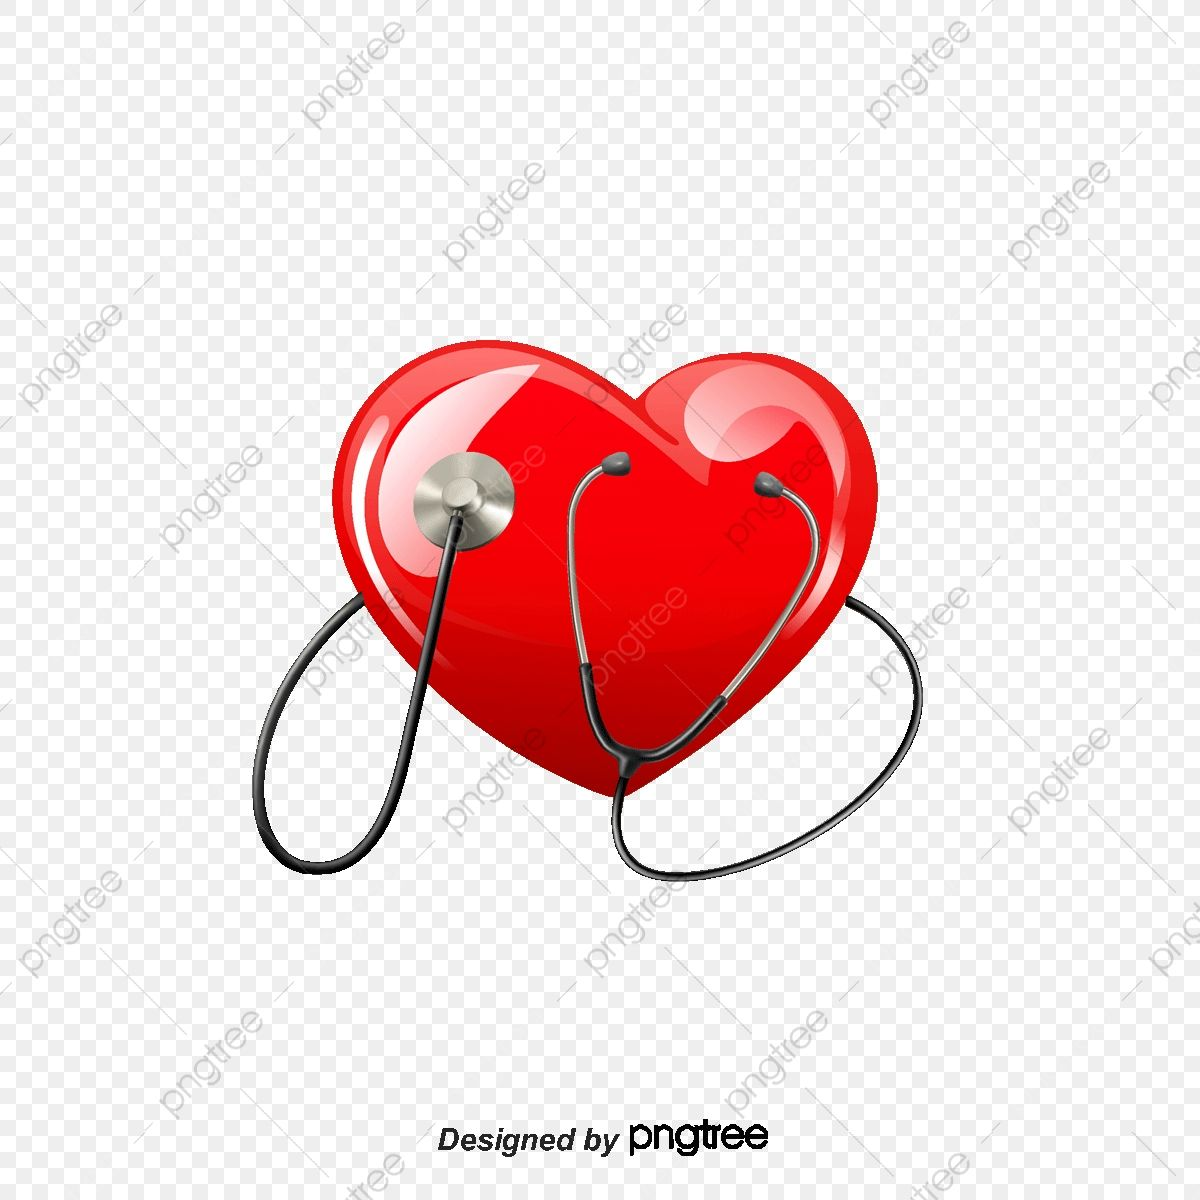 Heart Stethoscope Heart Stethoscope Heart Shaped Png Transparent Clipart Image And Psd File For Free Download I Miss You Wallpaper Shapes Heart Shapes